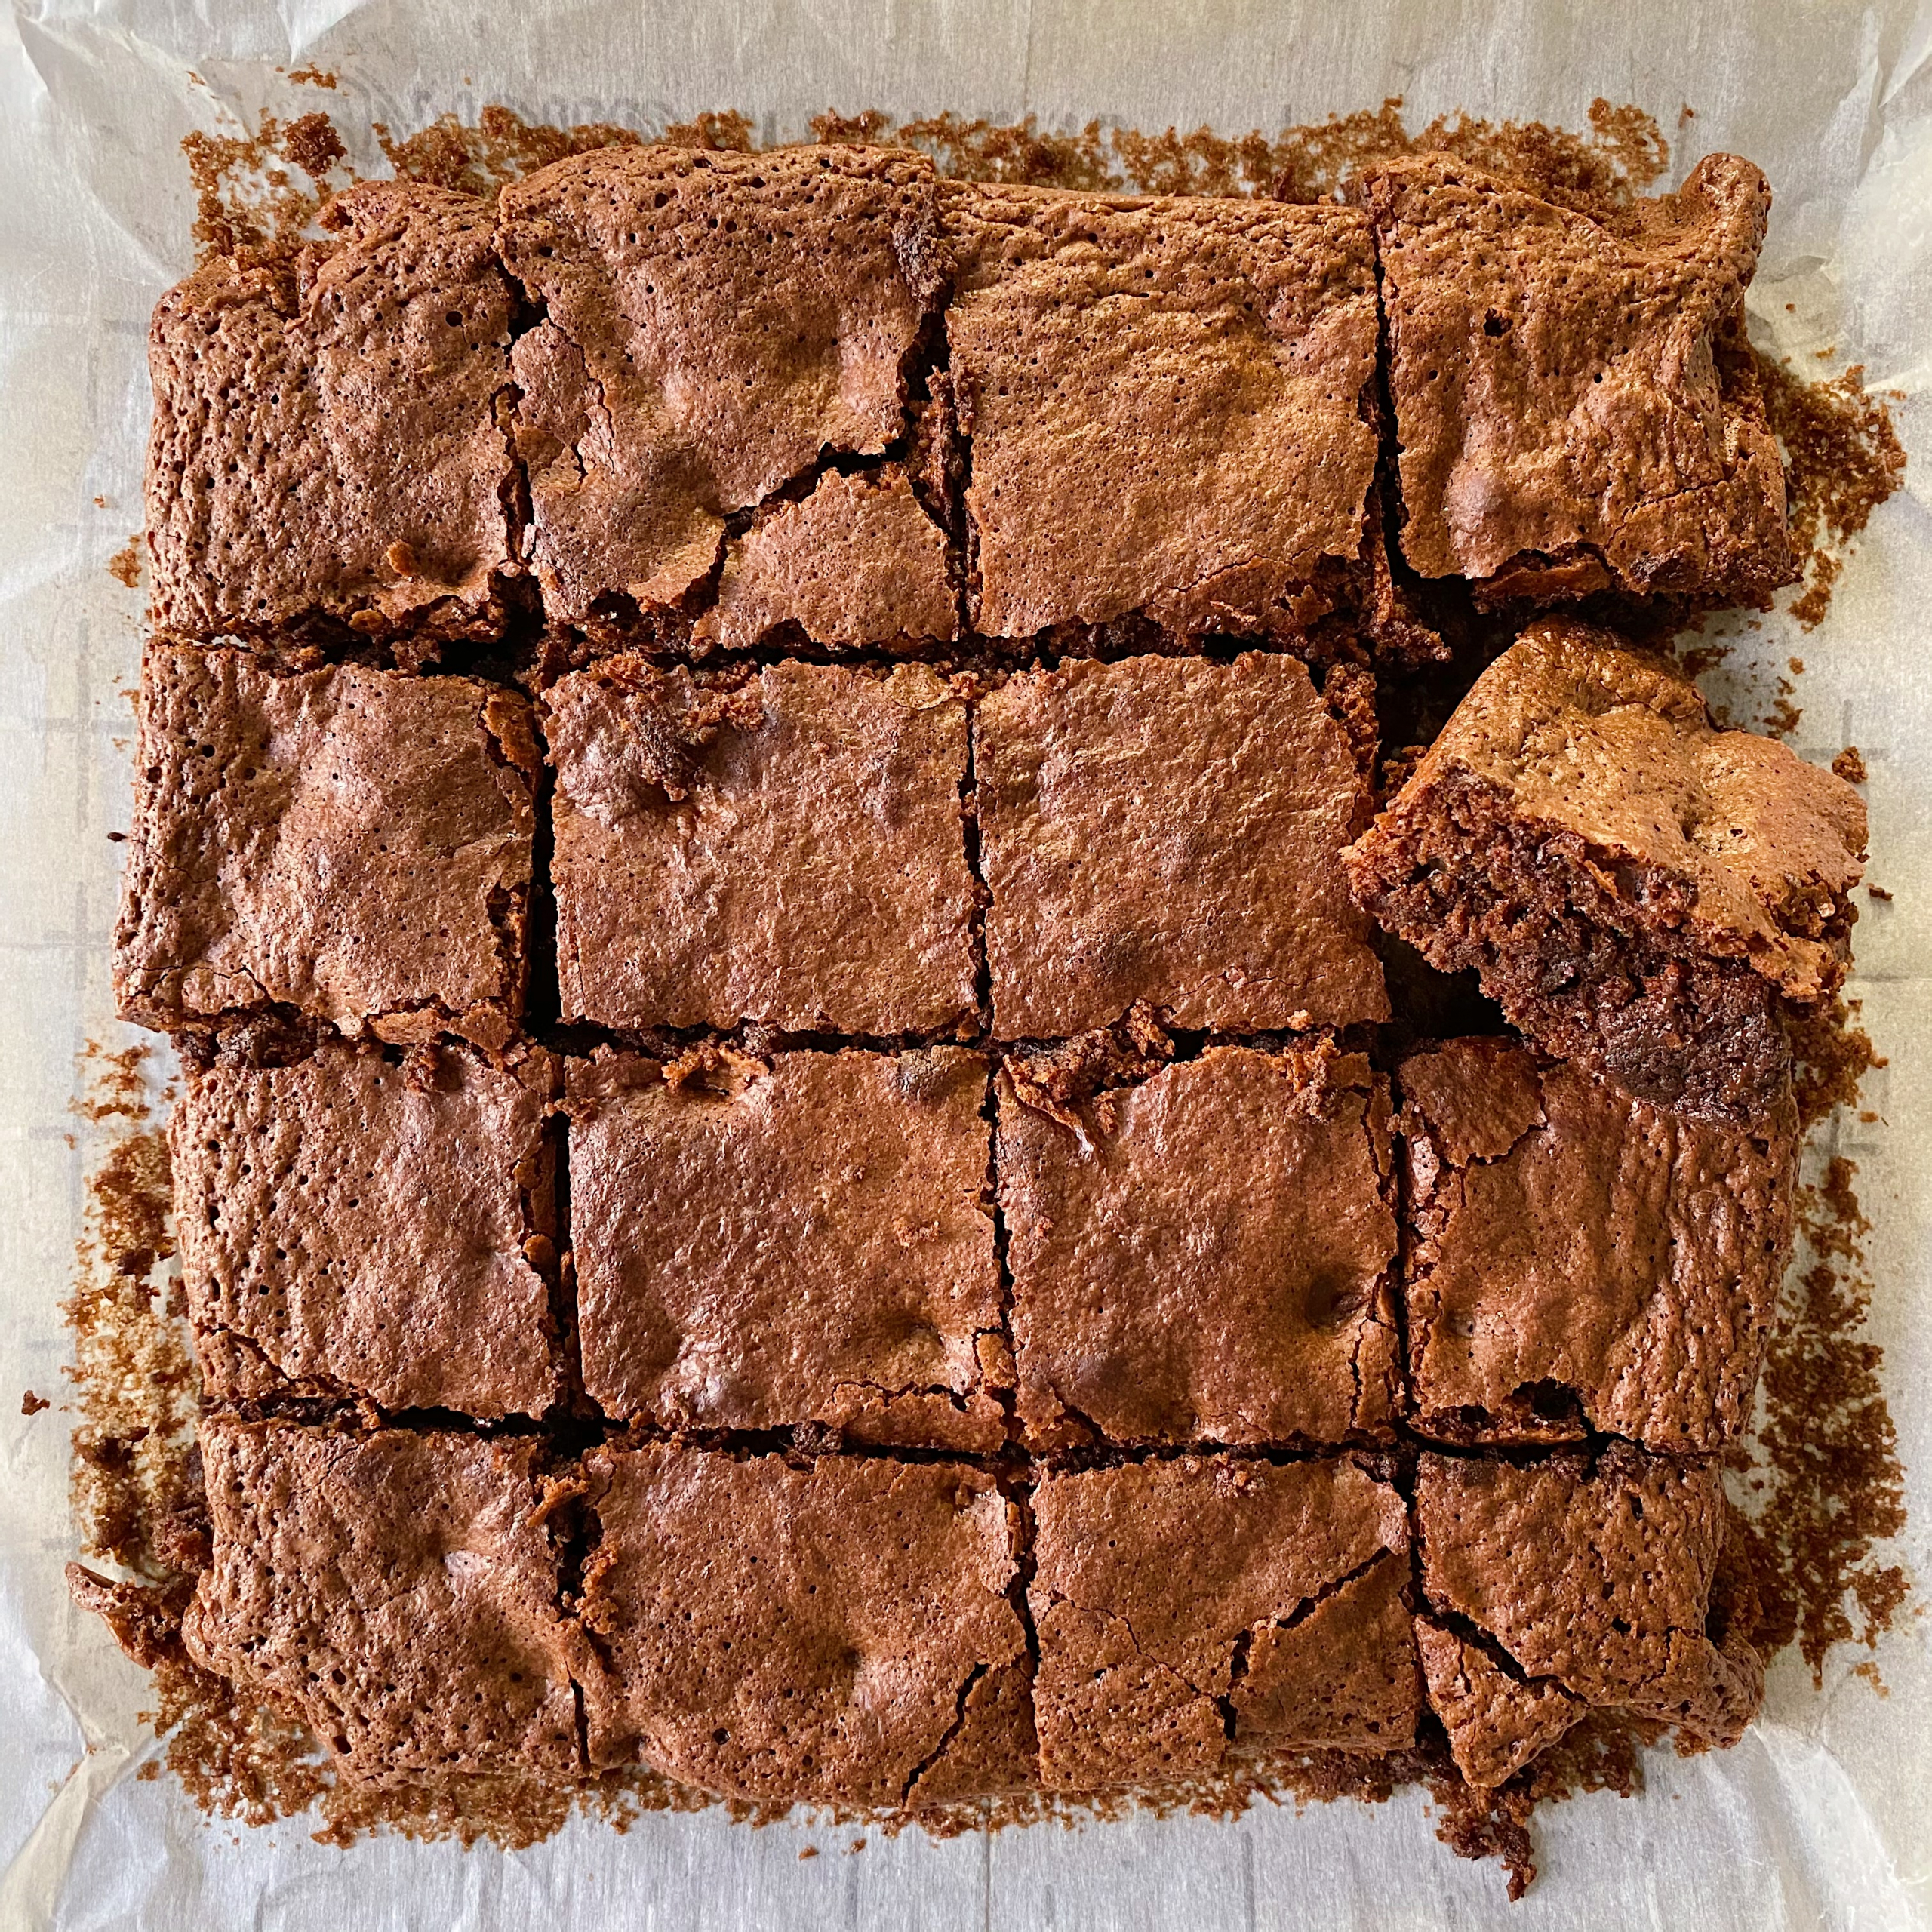 Fudgy Chocolate Brownies gluten-free #glutenfreerecipes www.healthygffamily.com